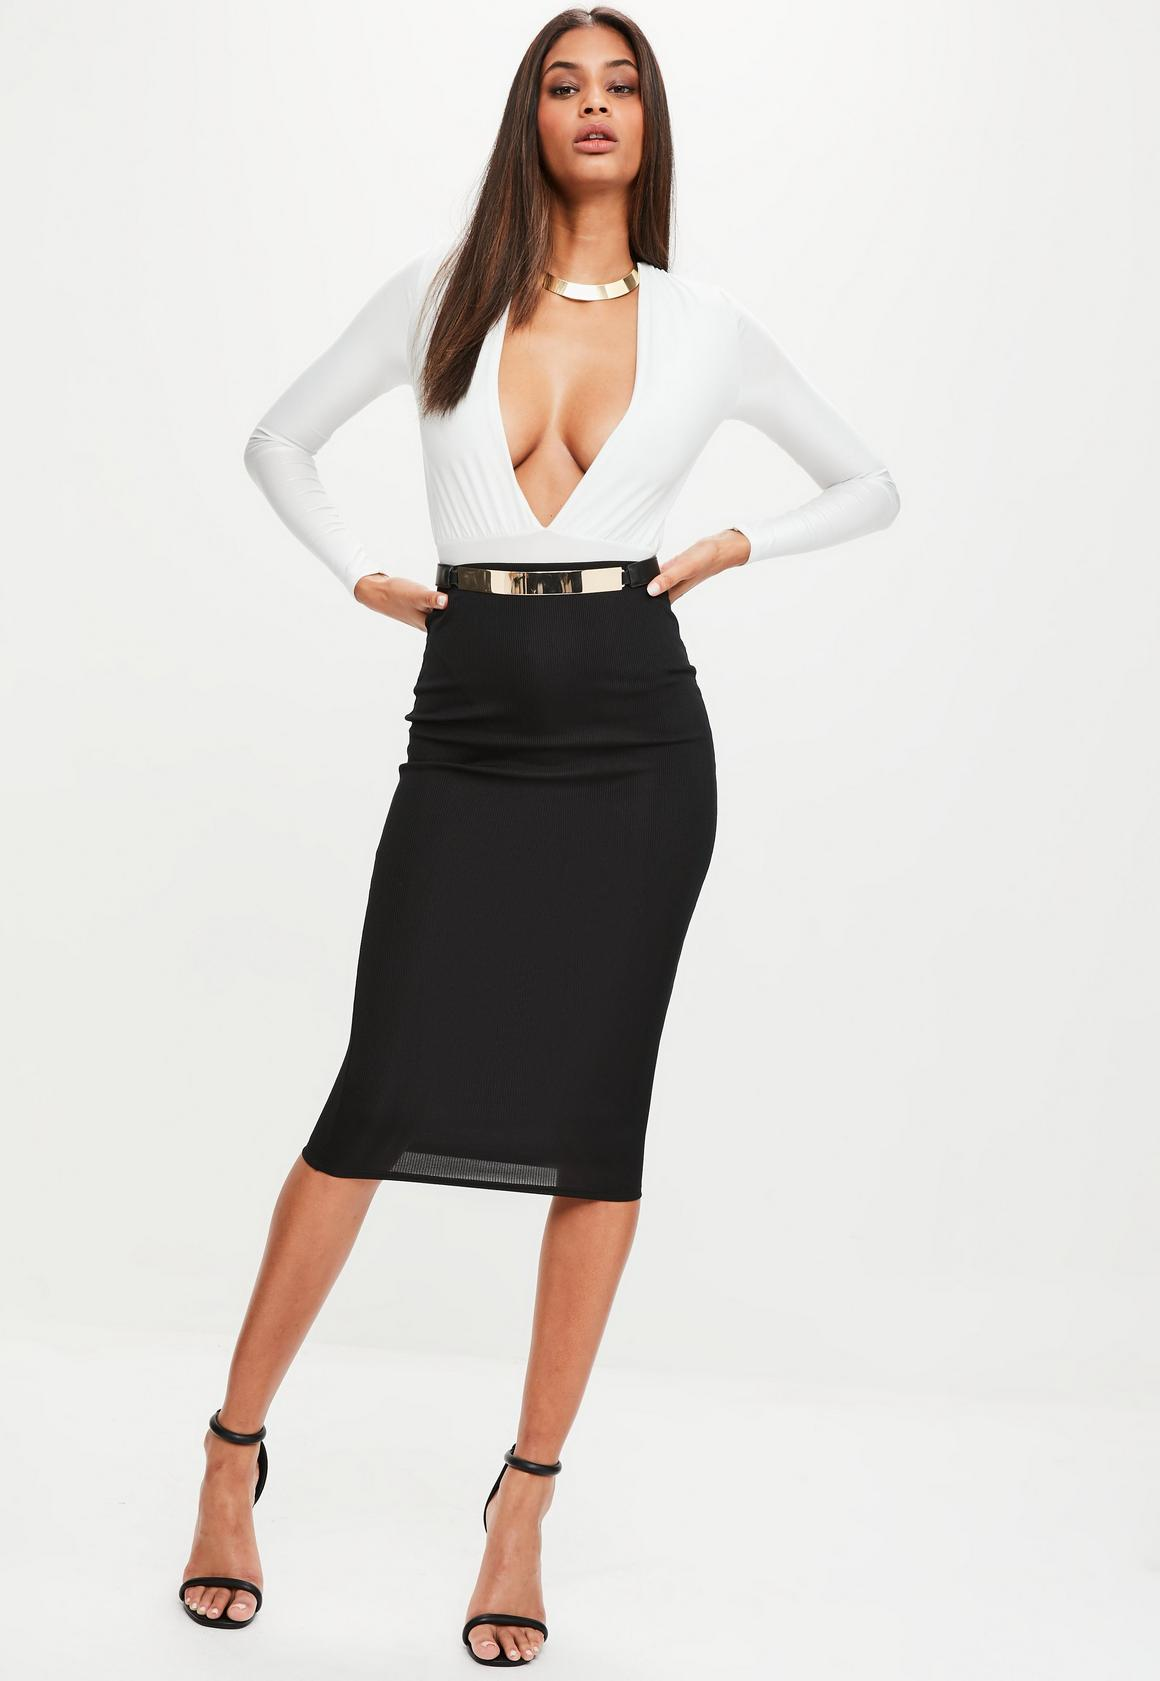 Collection Long Tight Skirts Pictures - Biotechfashion